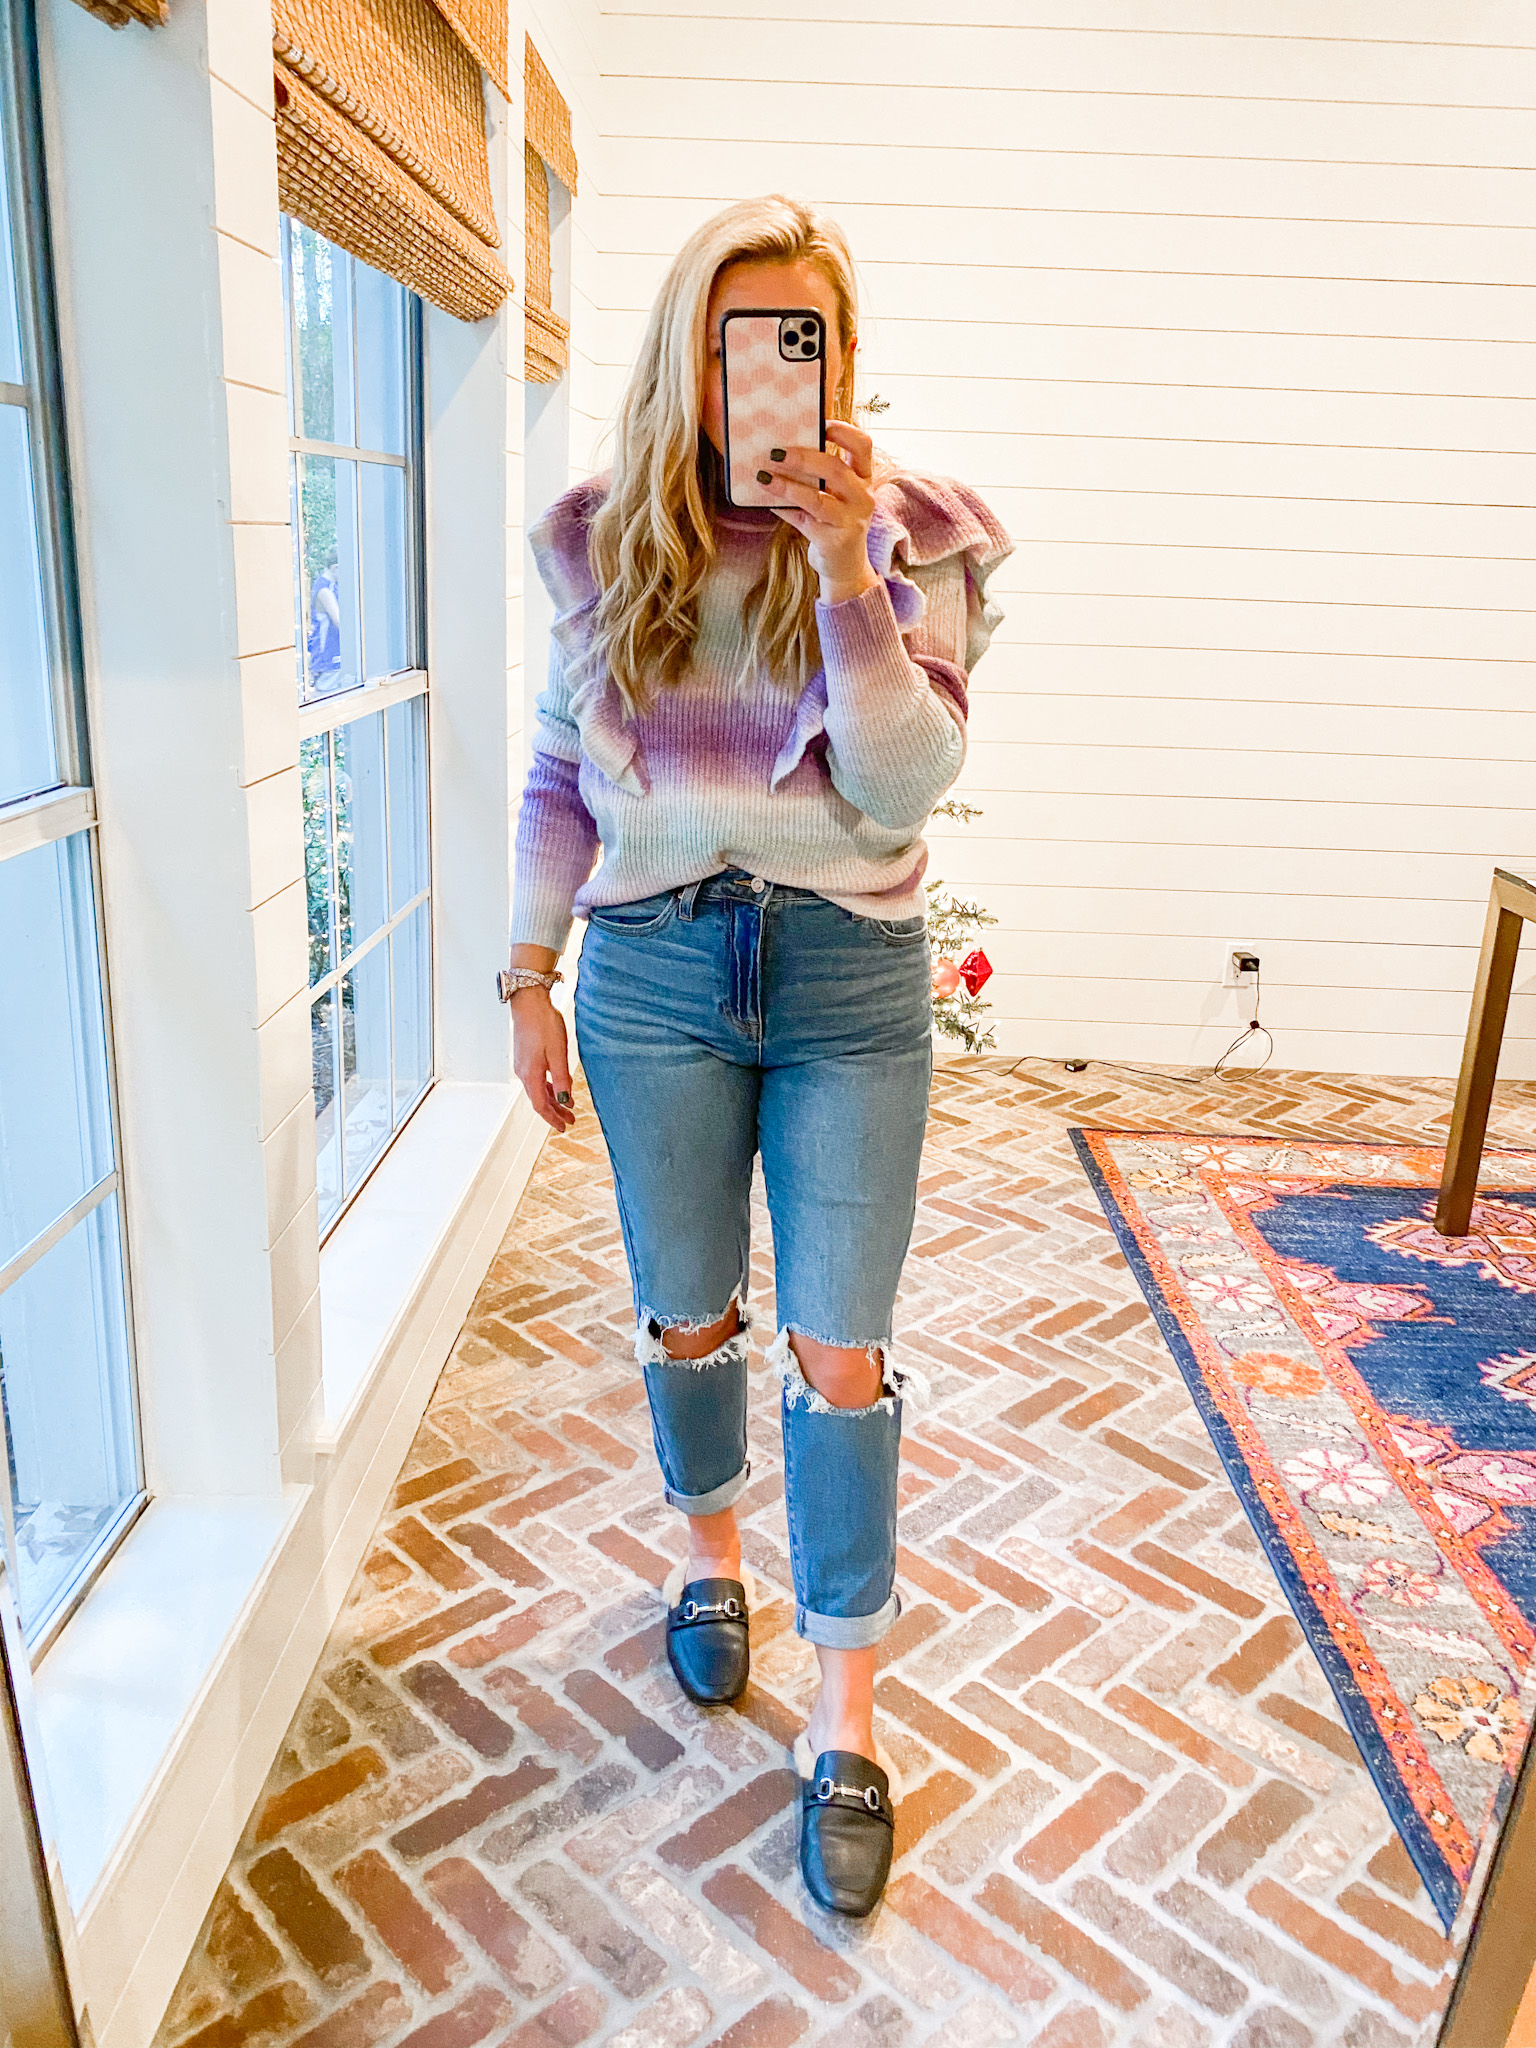 Walmart Womens Clothes by popular Houston fashion blog, Fancy Ashley: image of a woman wearing a Walmart Scoop Women's Space Dye Sweater with Ruffle Trim, faux fur lined black mules, and Walmart No Boundaries Juniors' Mom Jeans.